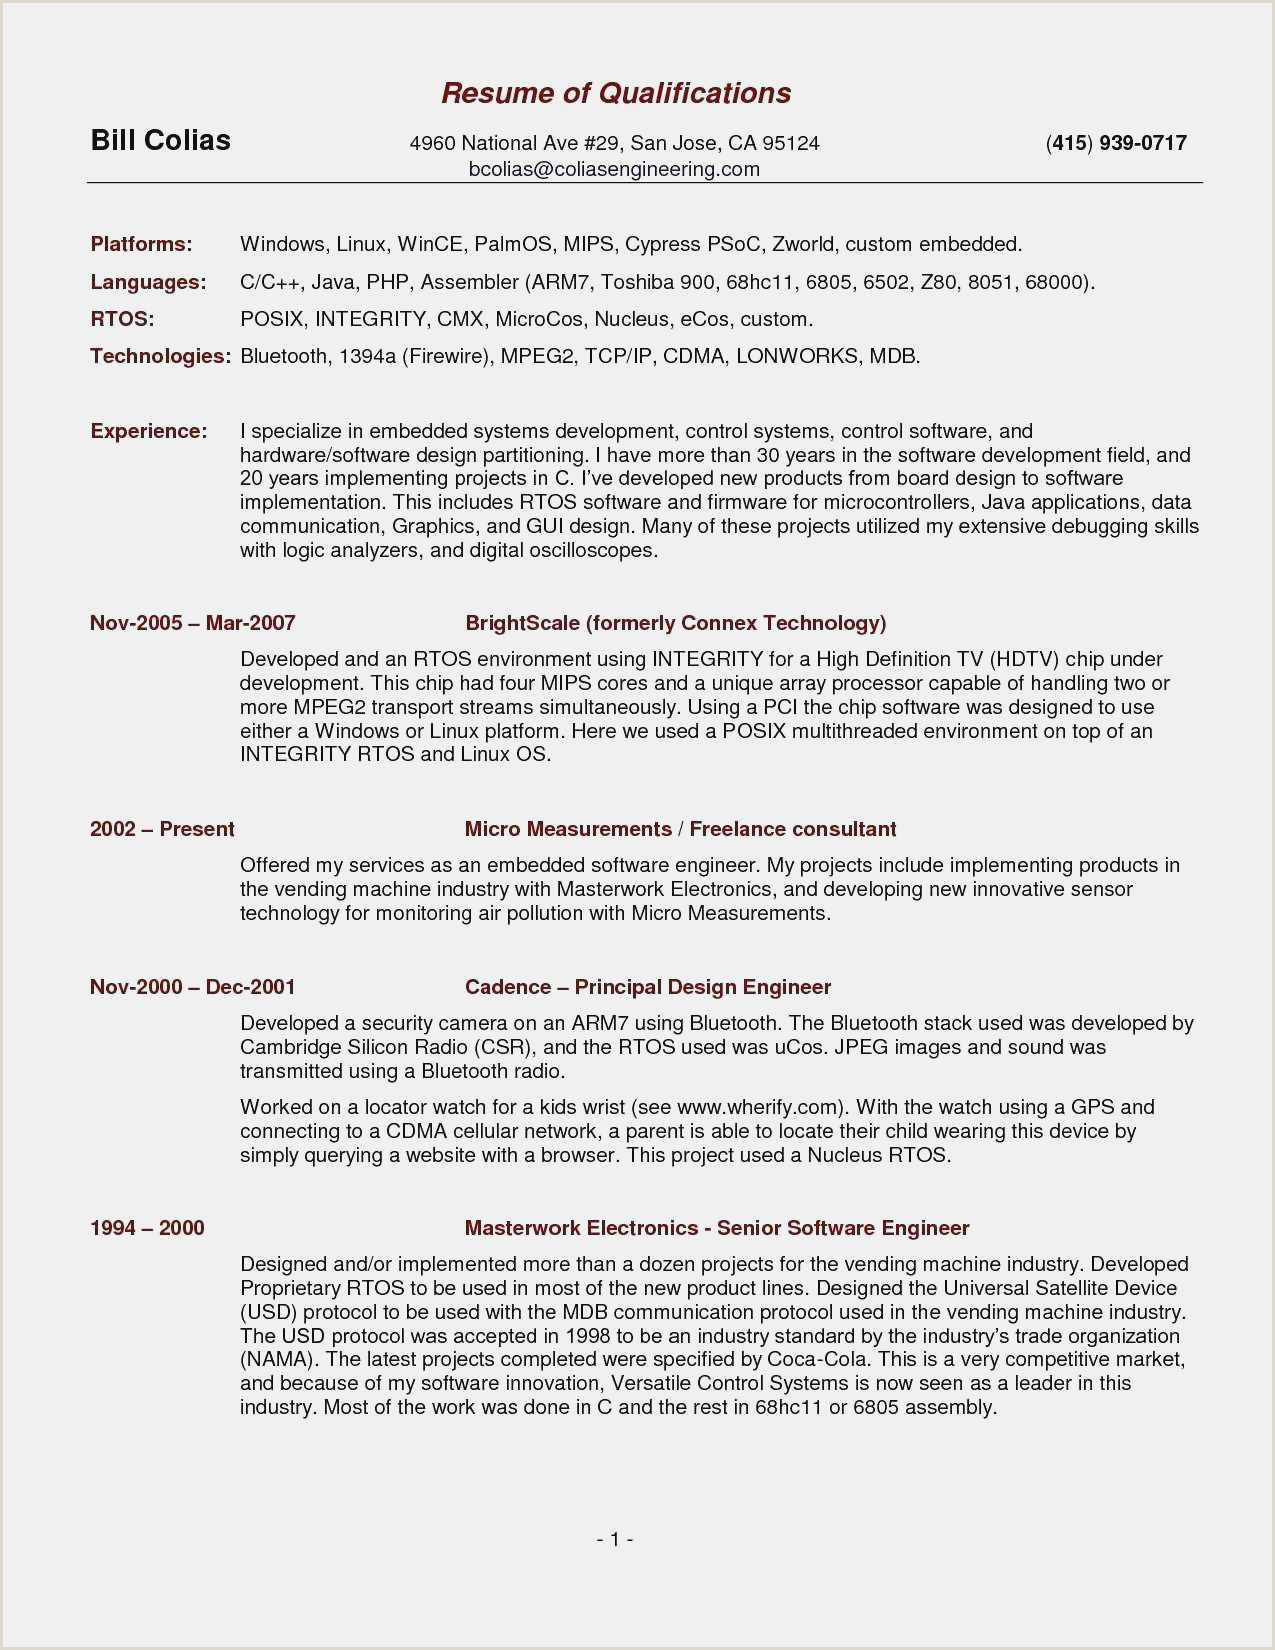 Web Design Proposal Template Free Download Lecturer Resumes Free Download